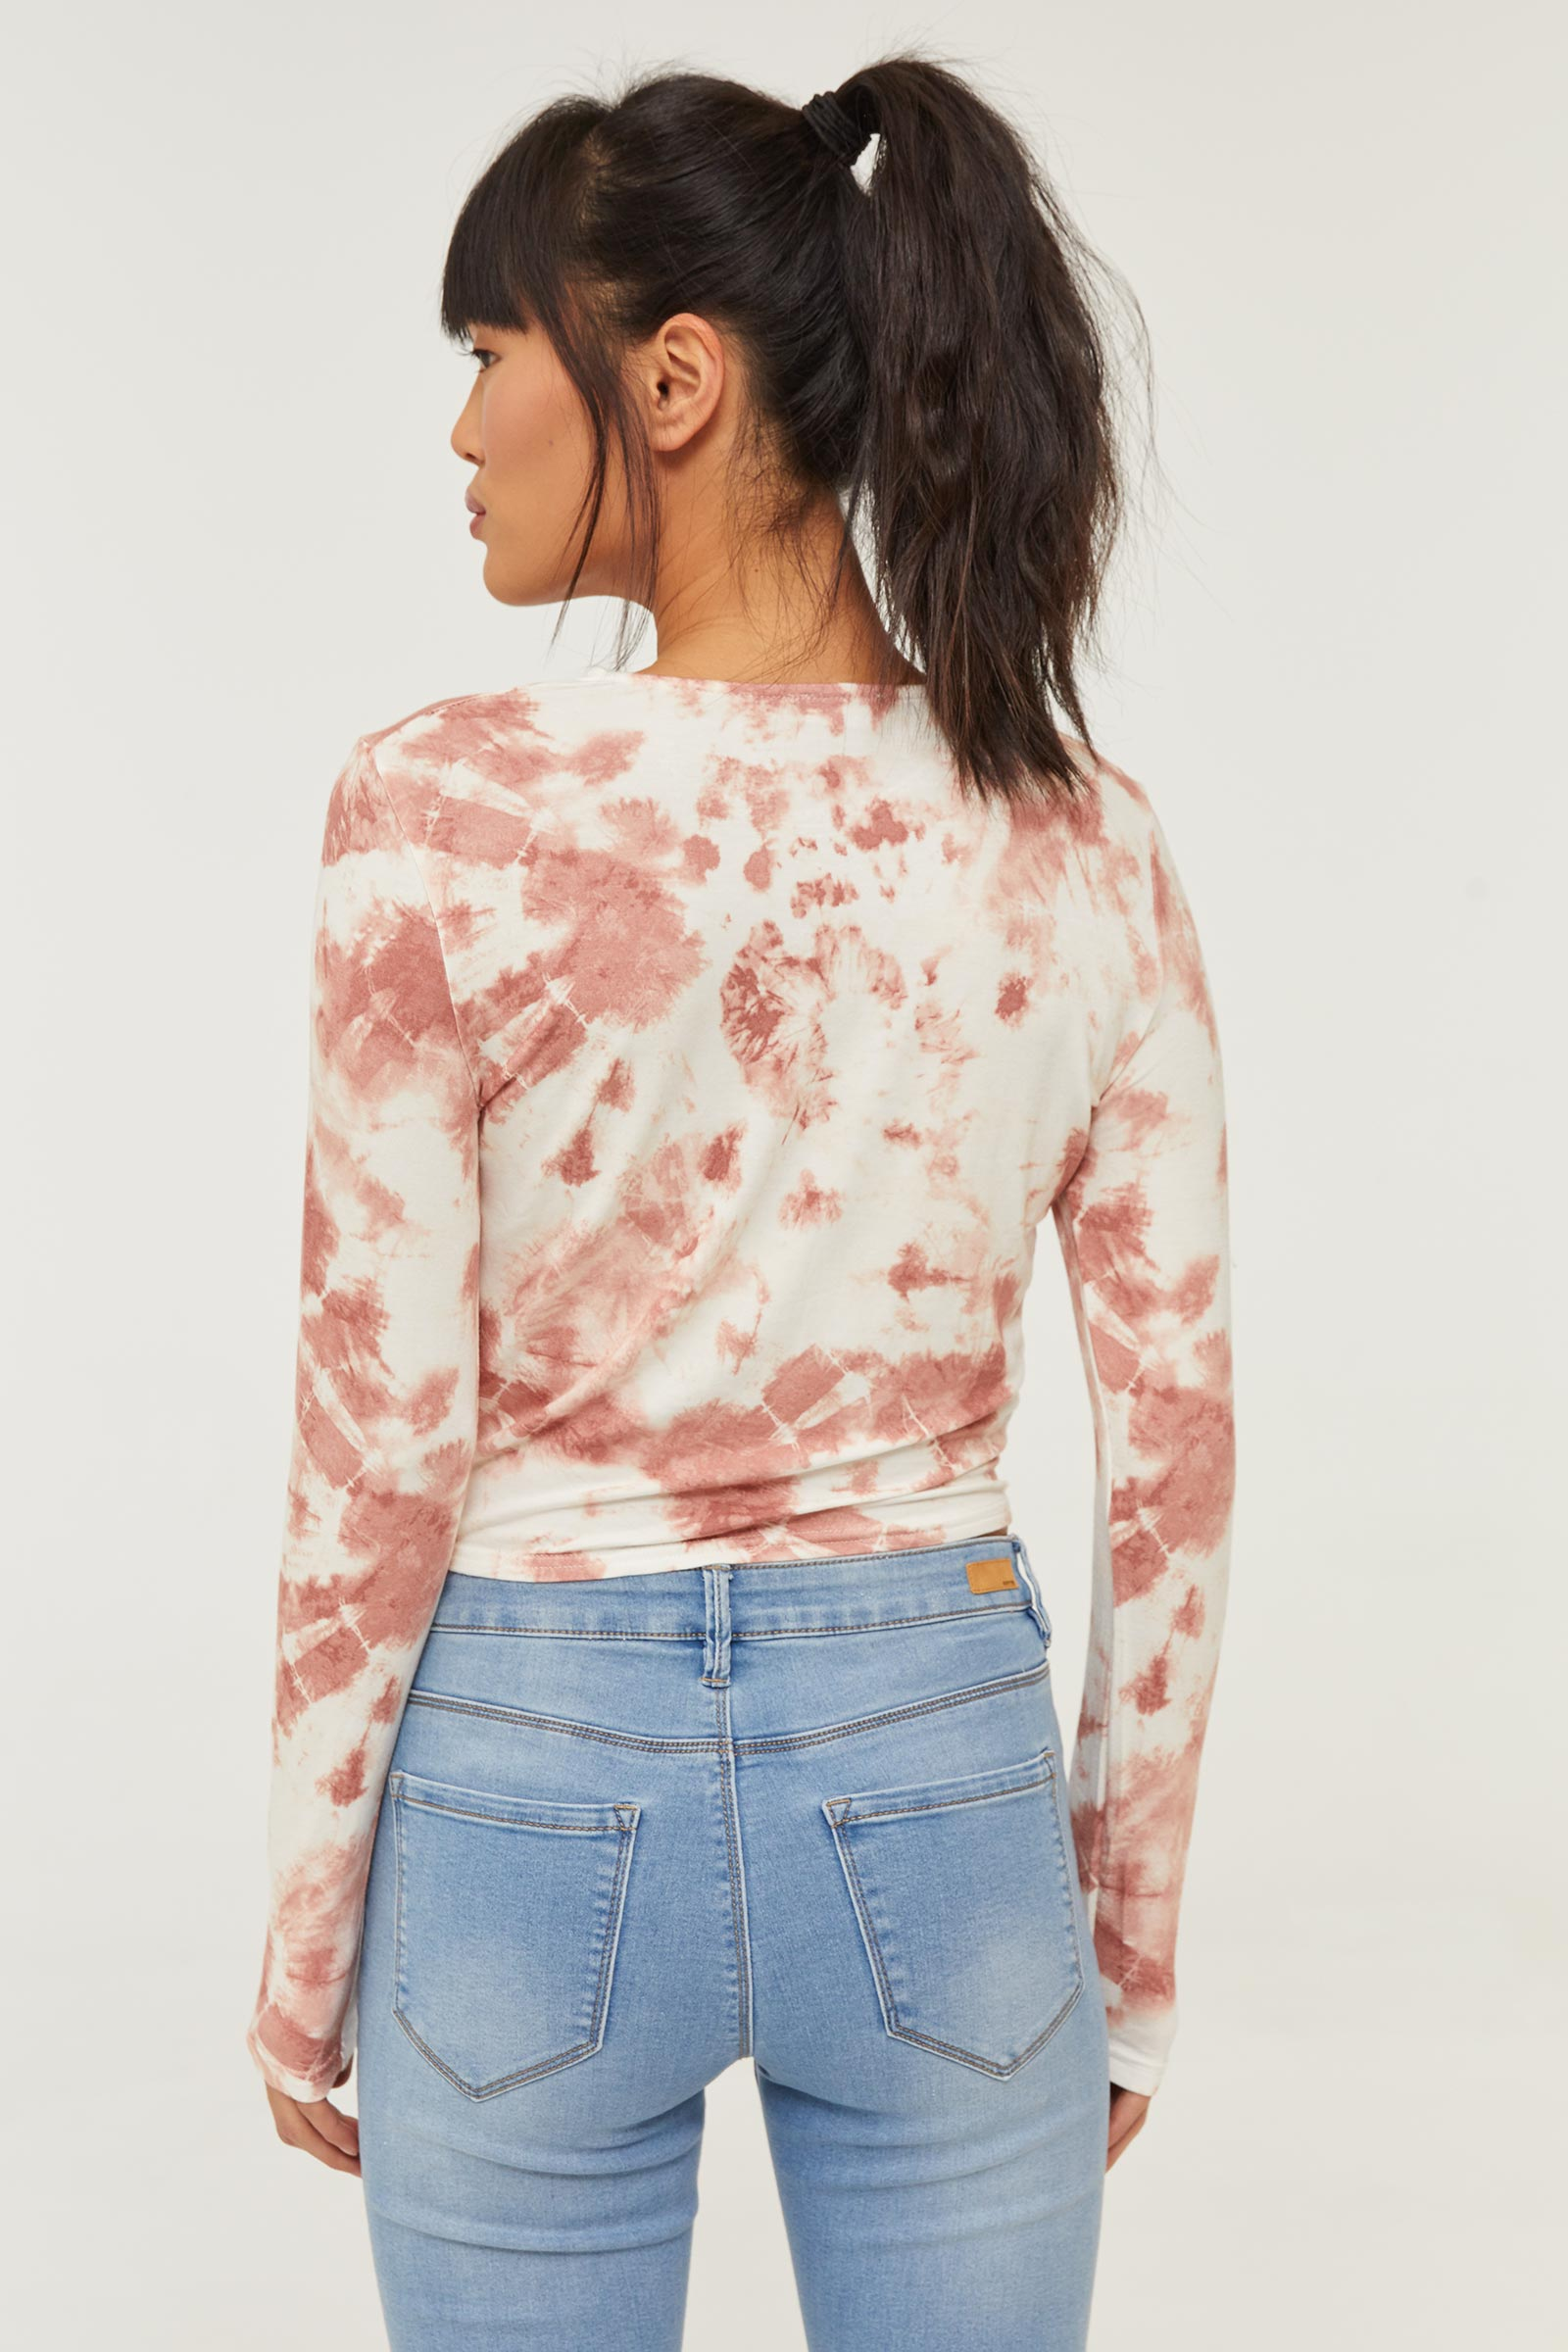 Knotted Tie-dye Tee